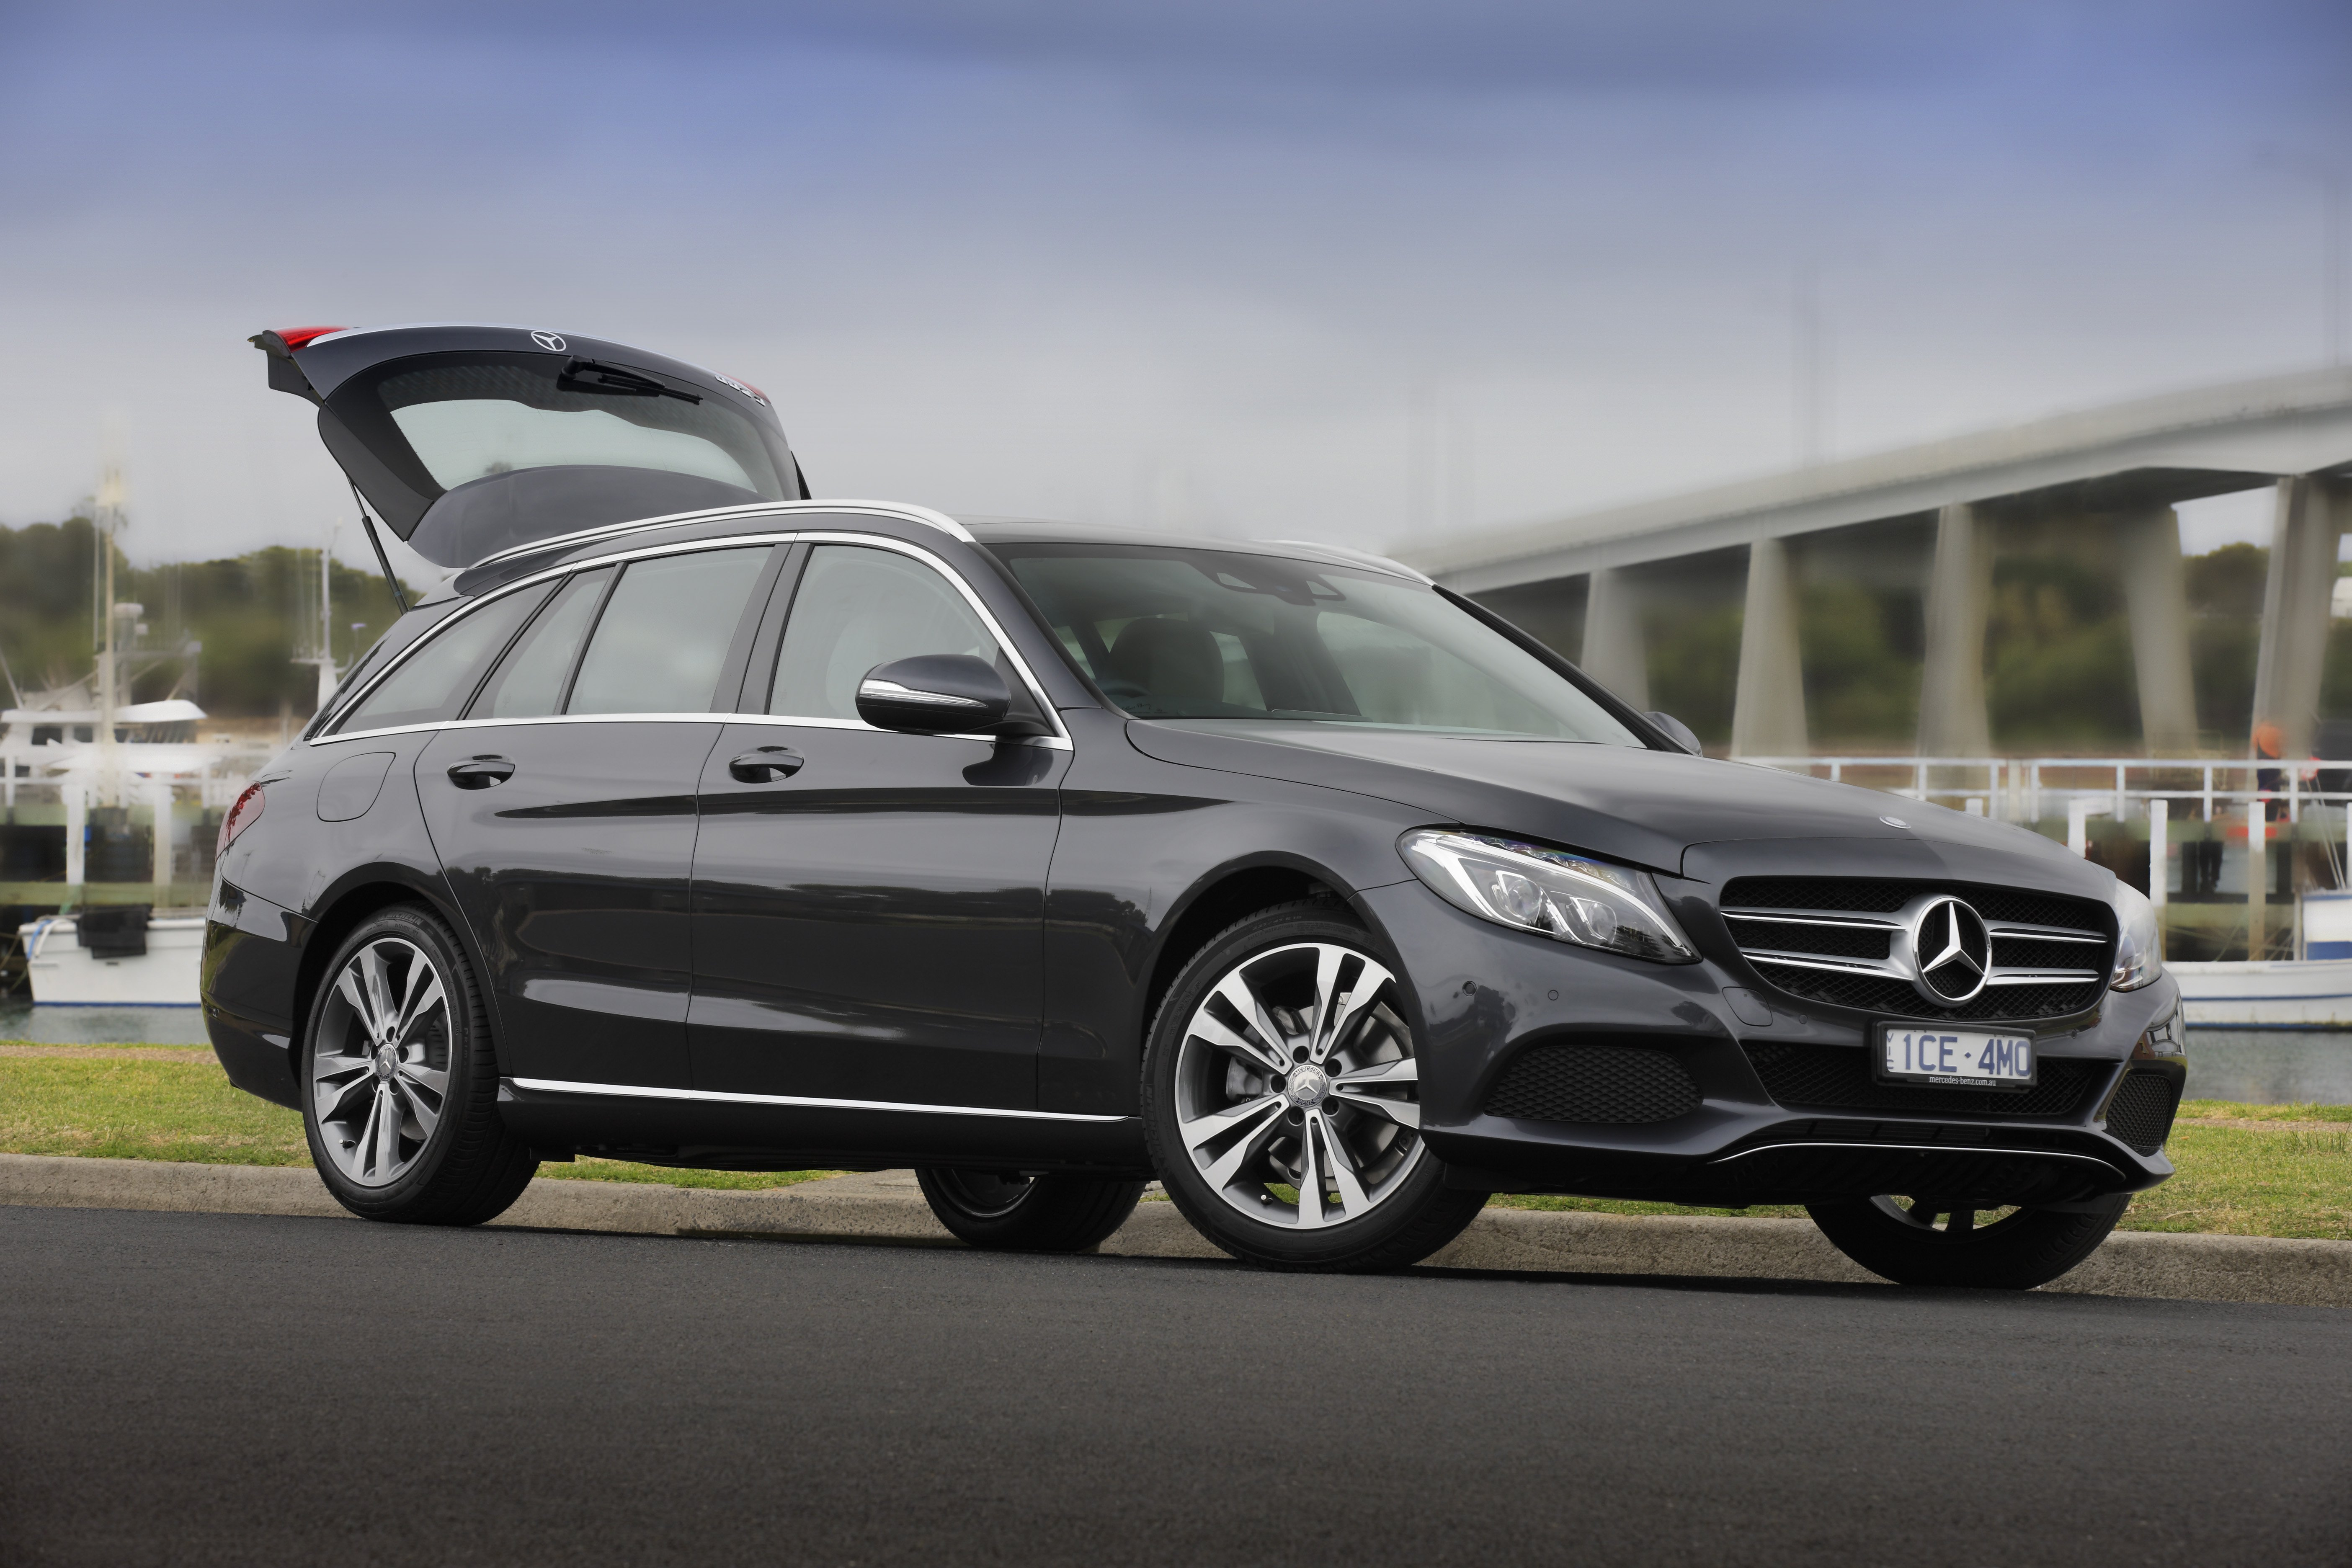 Mercedes C-Class Estate (S205) mod restyling